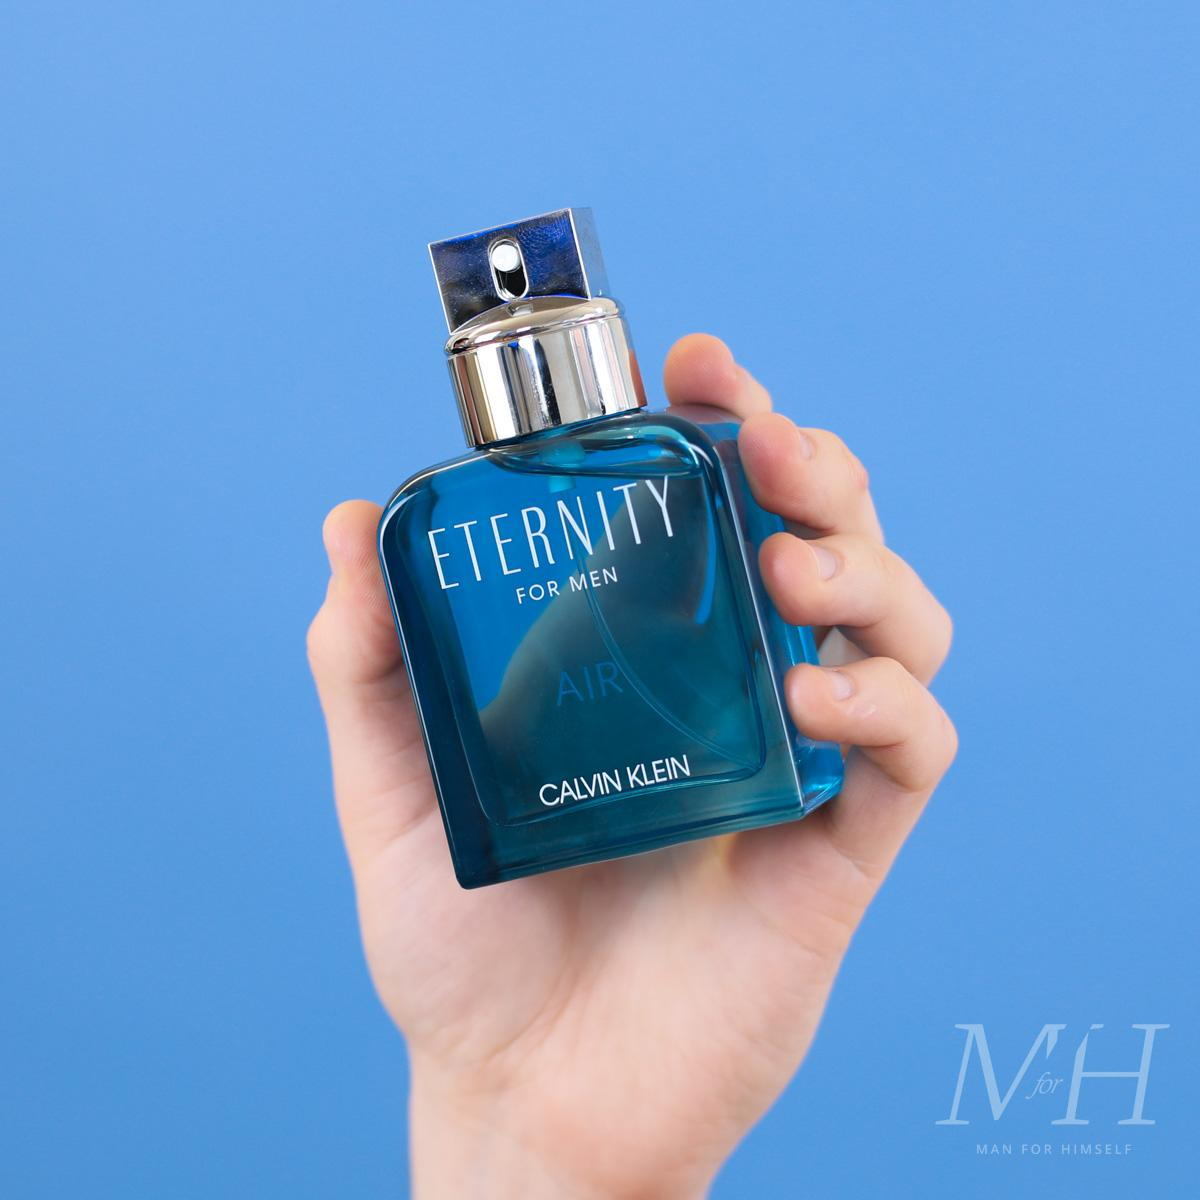 calvin-klein-eternity-air-fragrance-product-man-for-himself